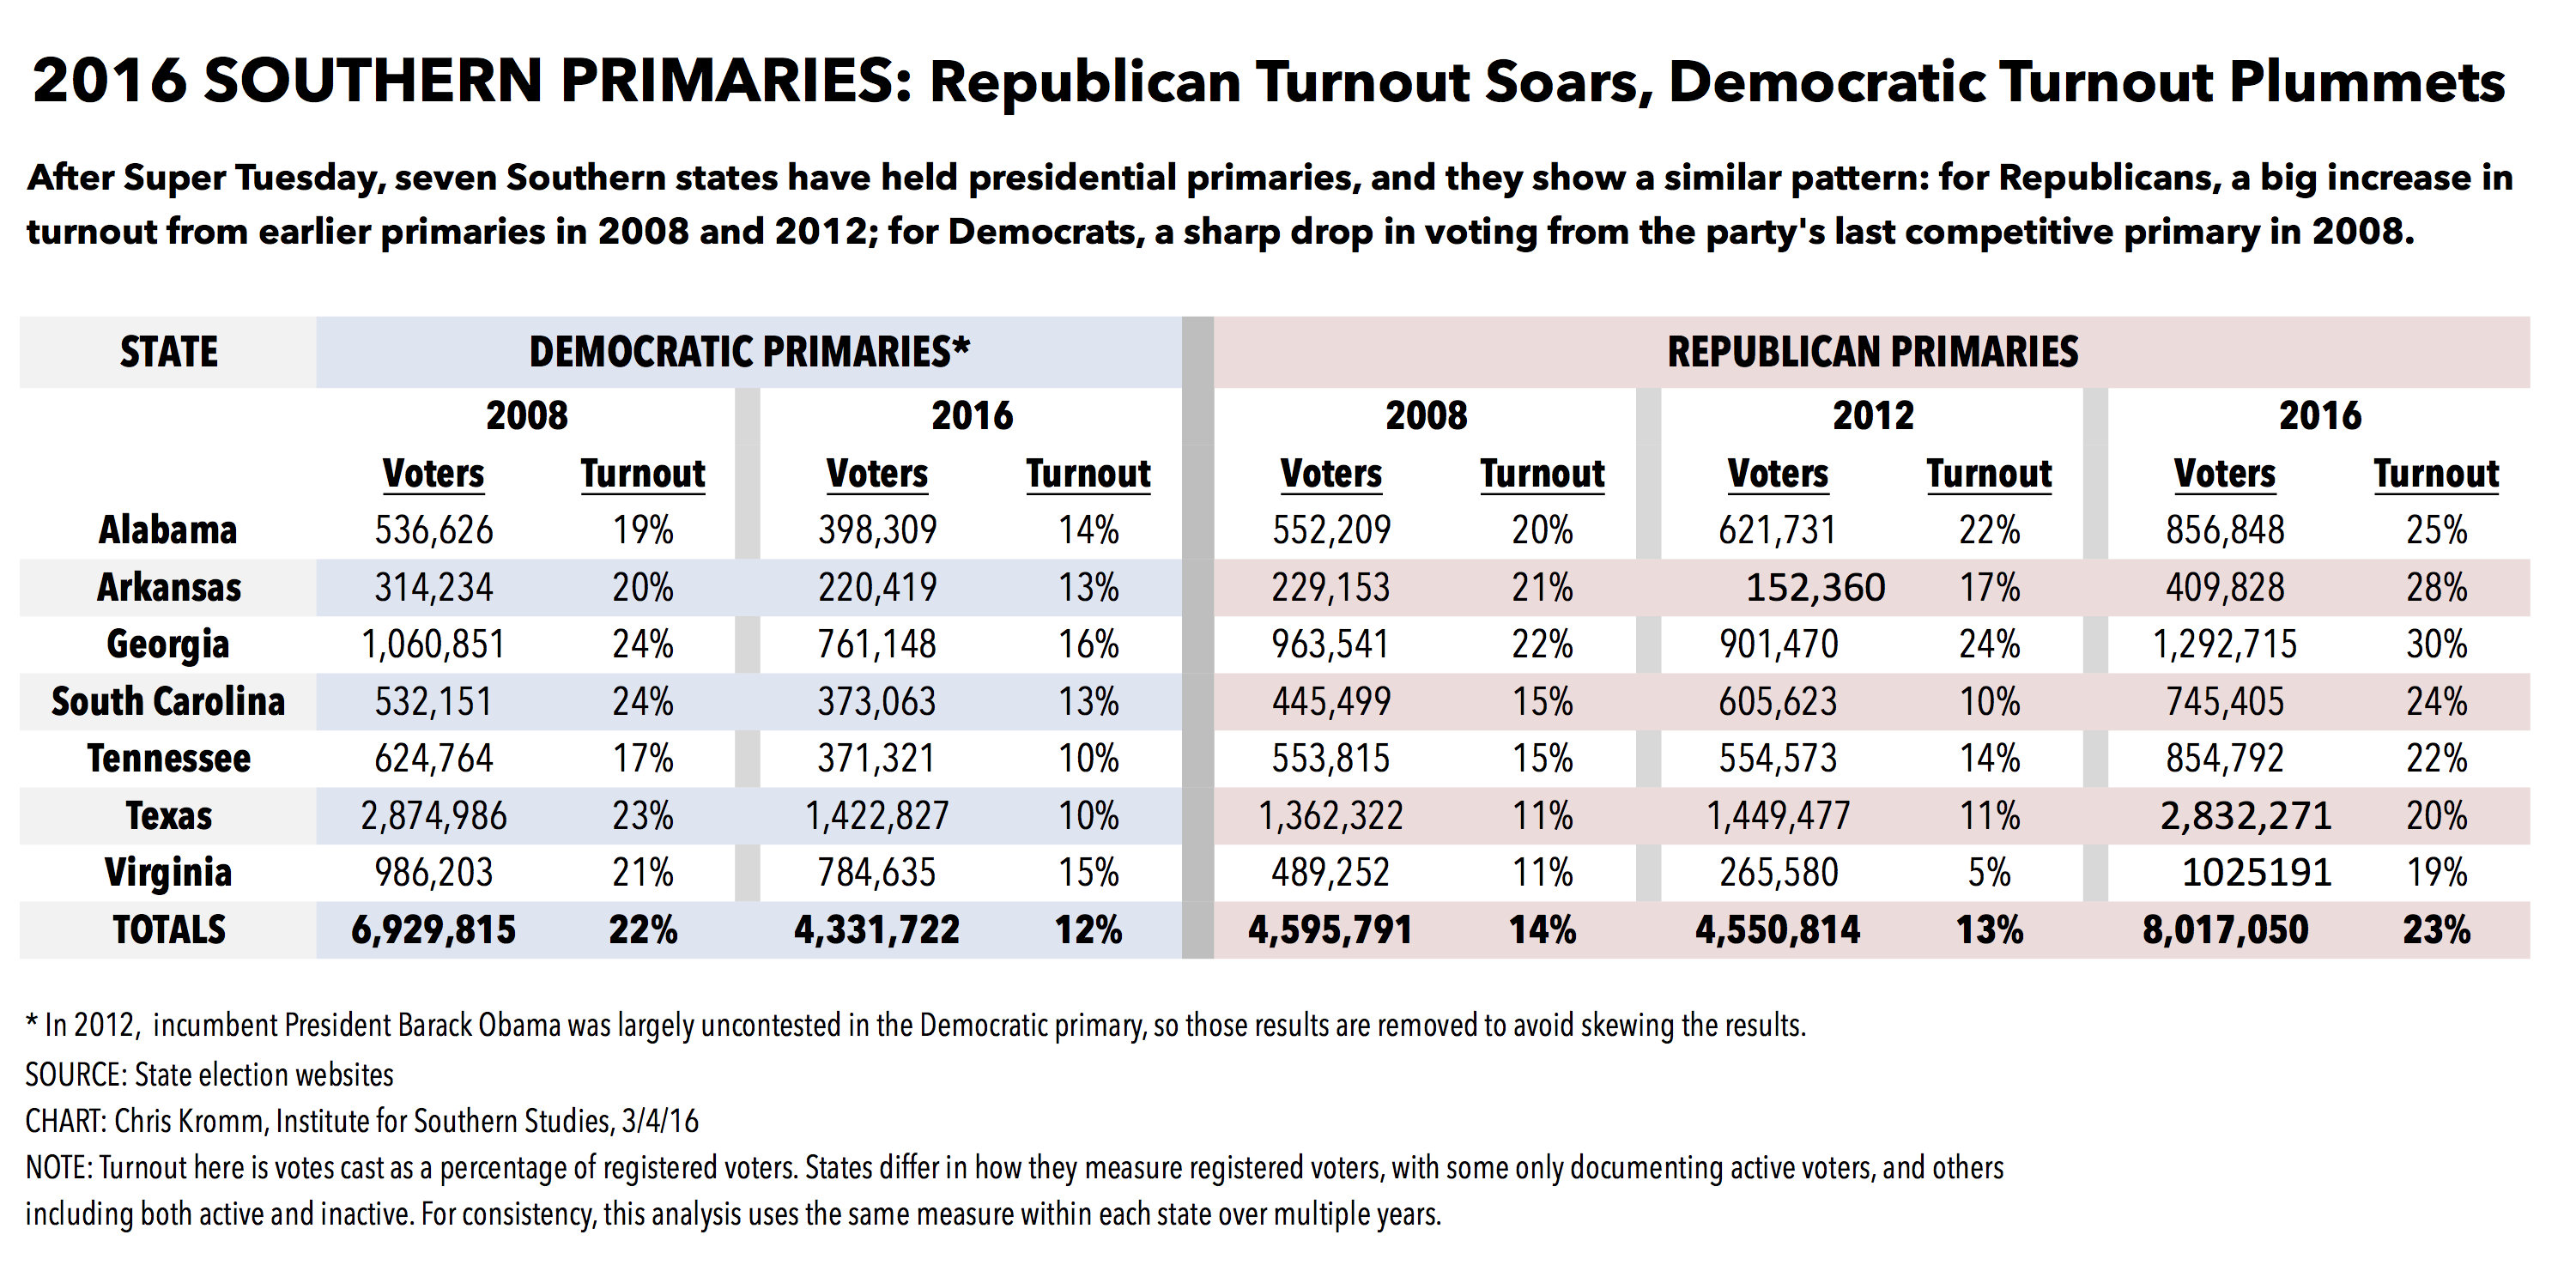 2016 Elections GOP Turnout Soars Democratic Plummets In Southern Primaries